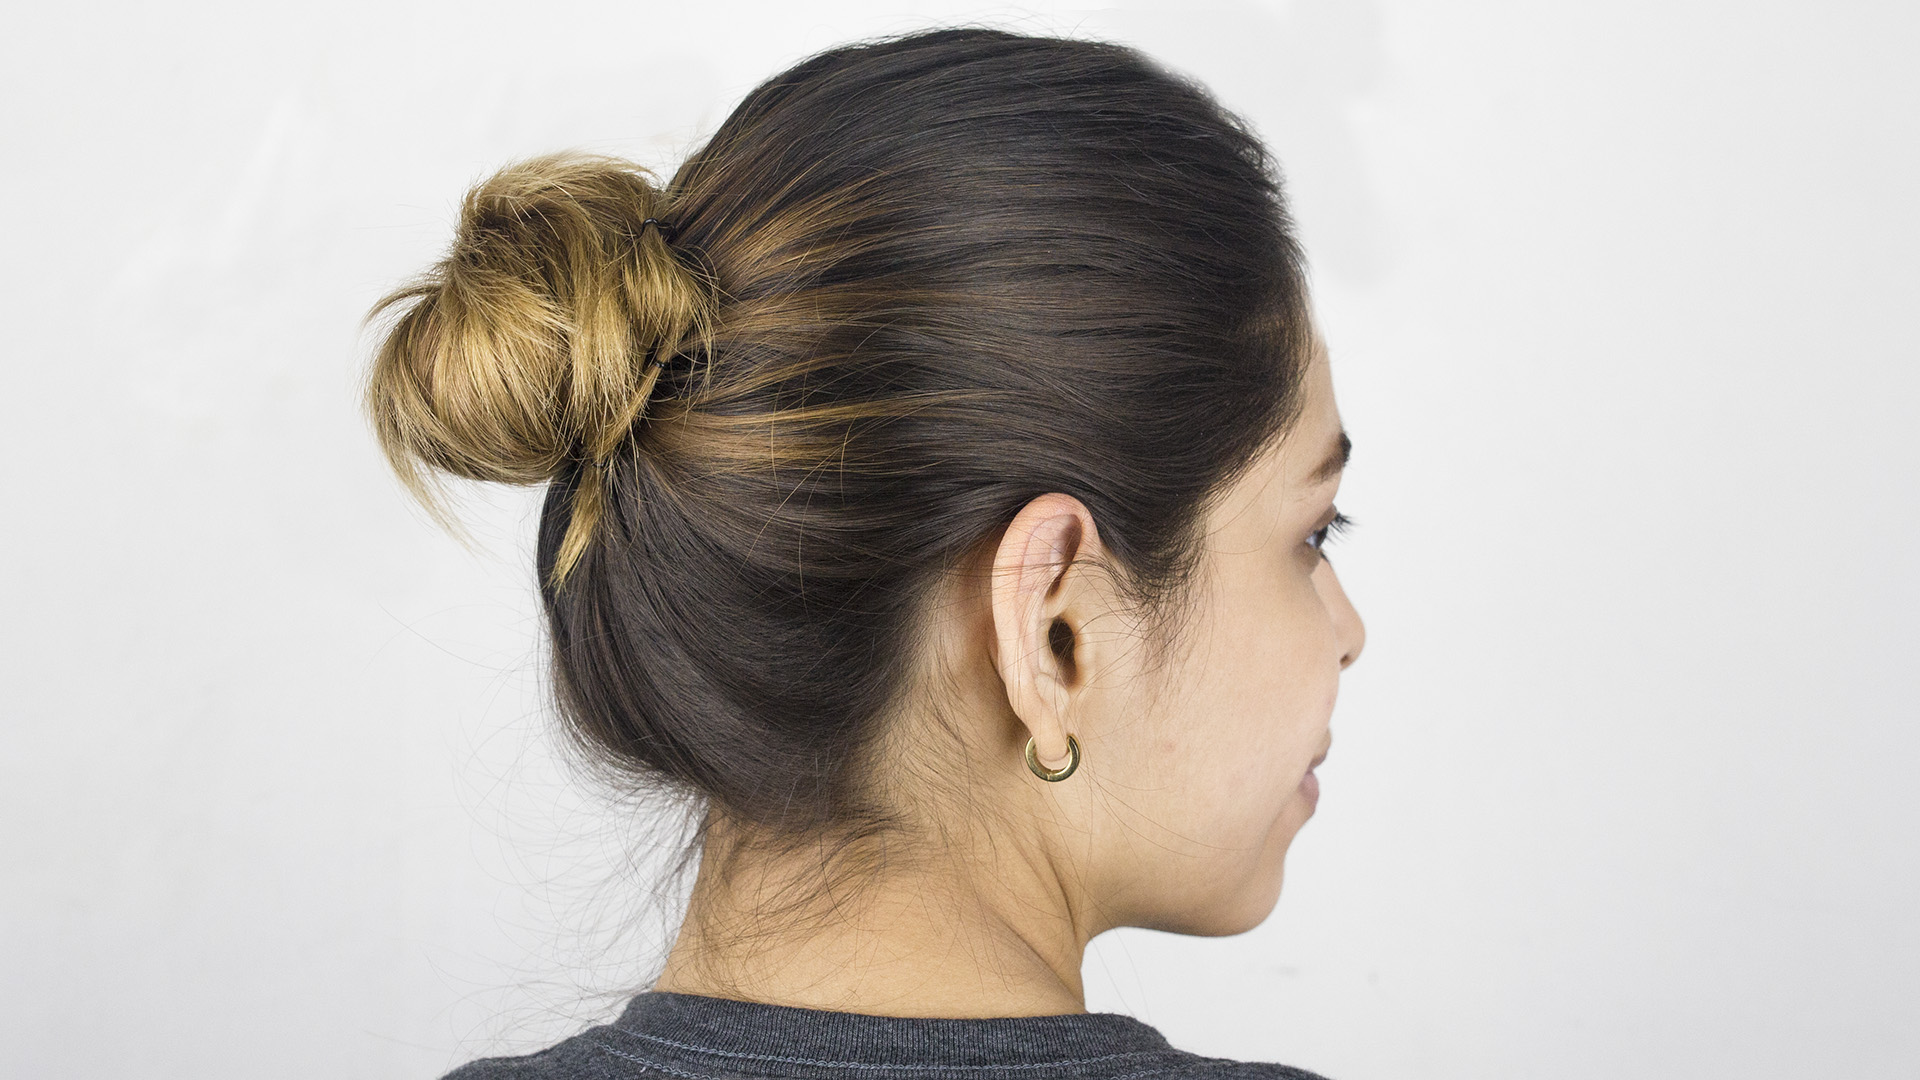 How to Make a Simple Bun in Hair 9 Steps with Pictures